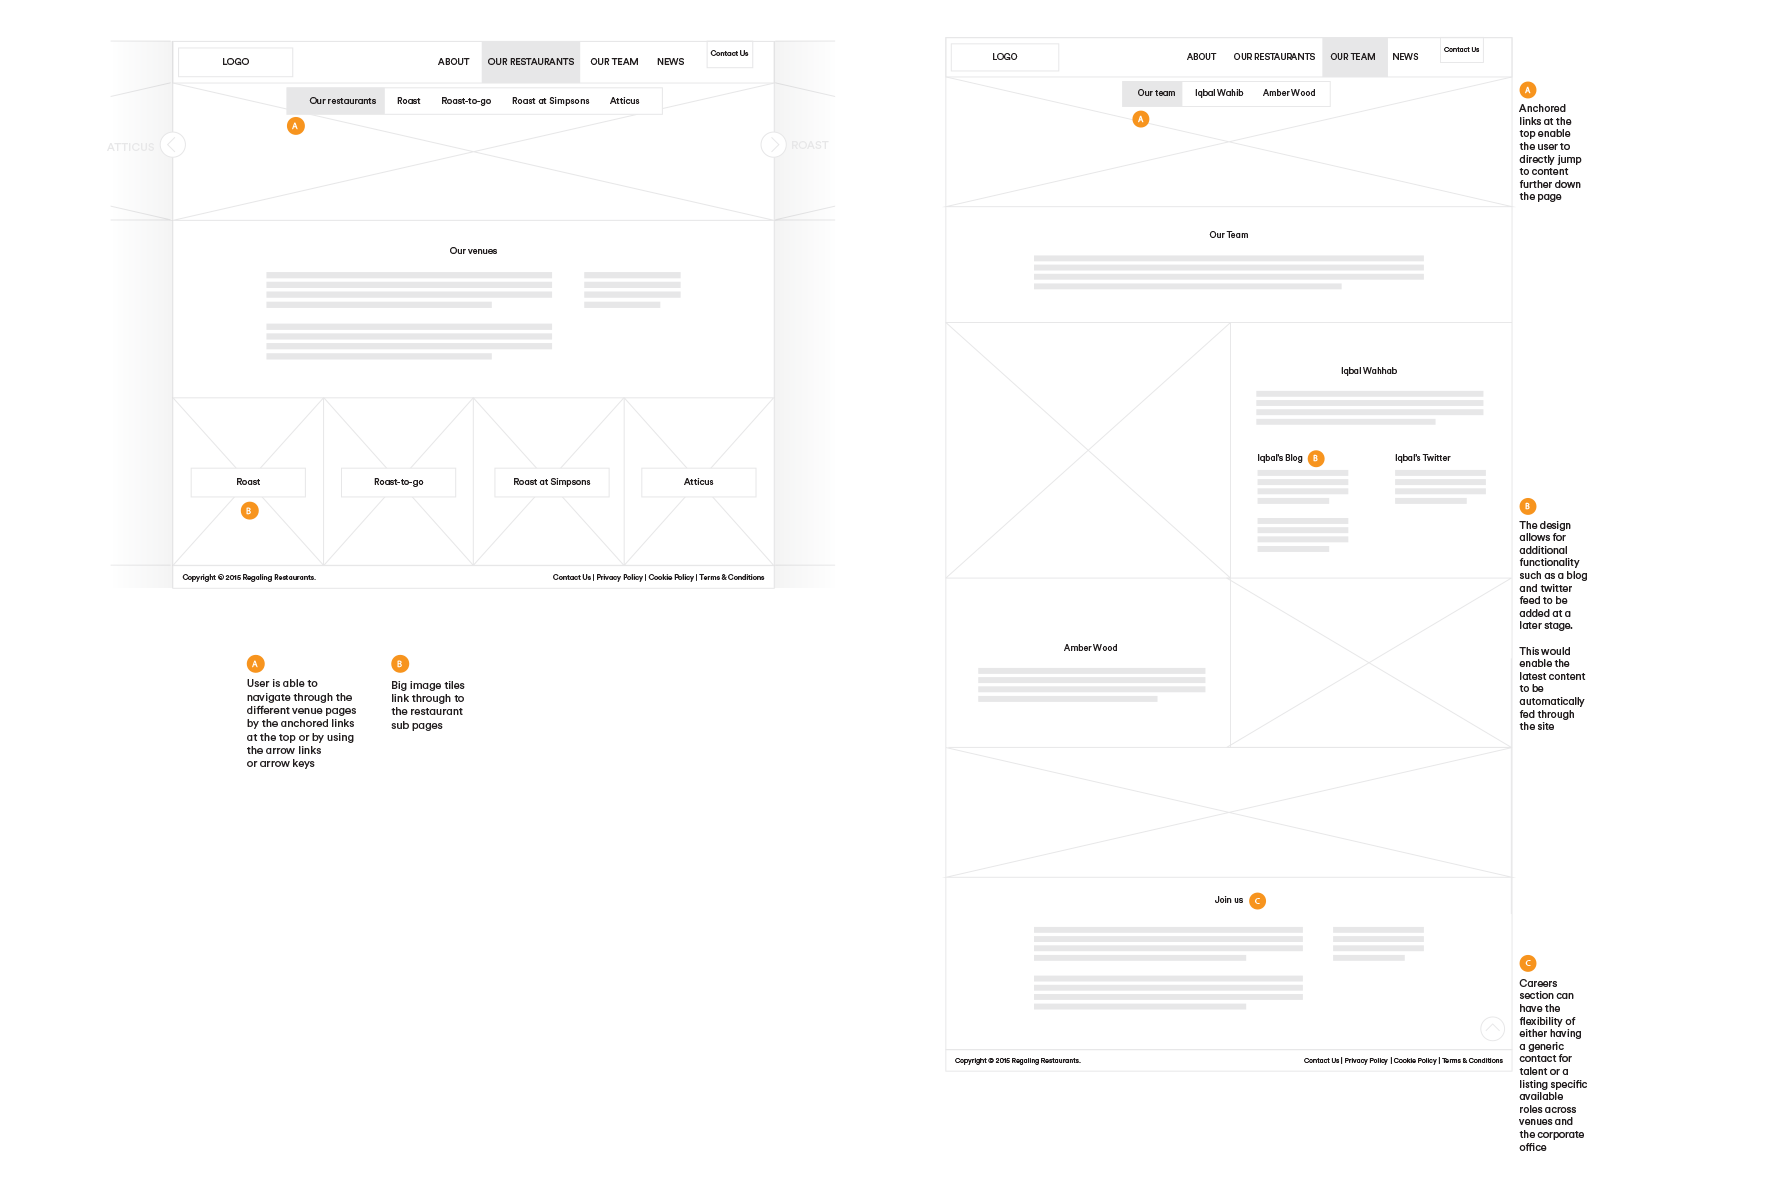 Some of the wireframes produced for the project